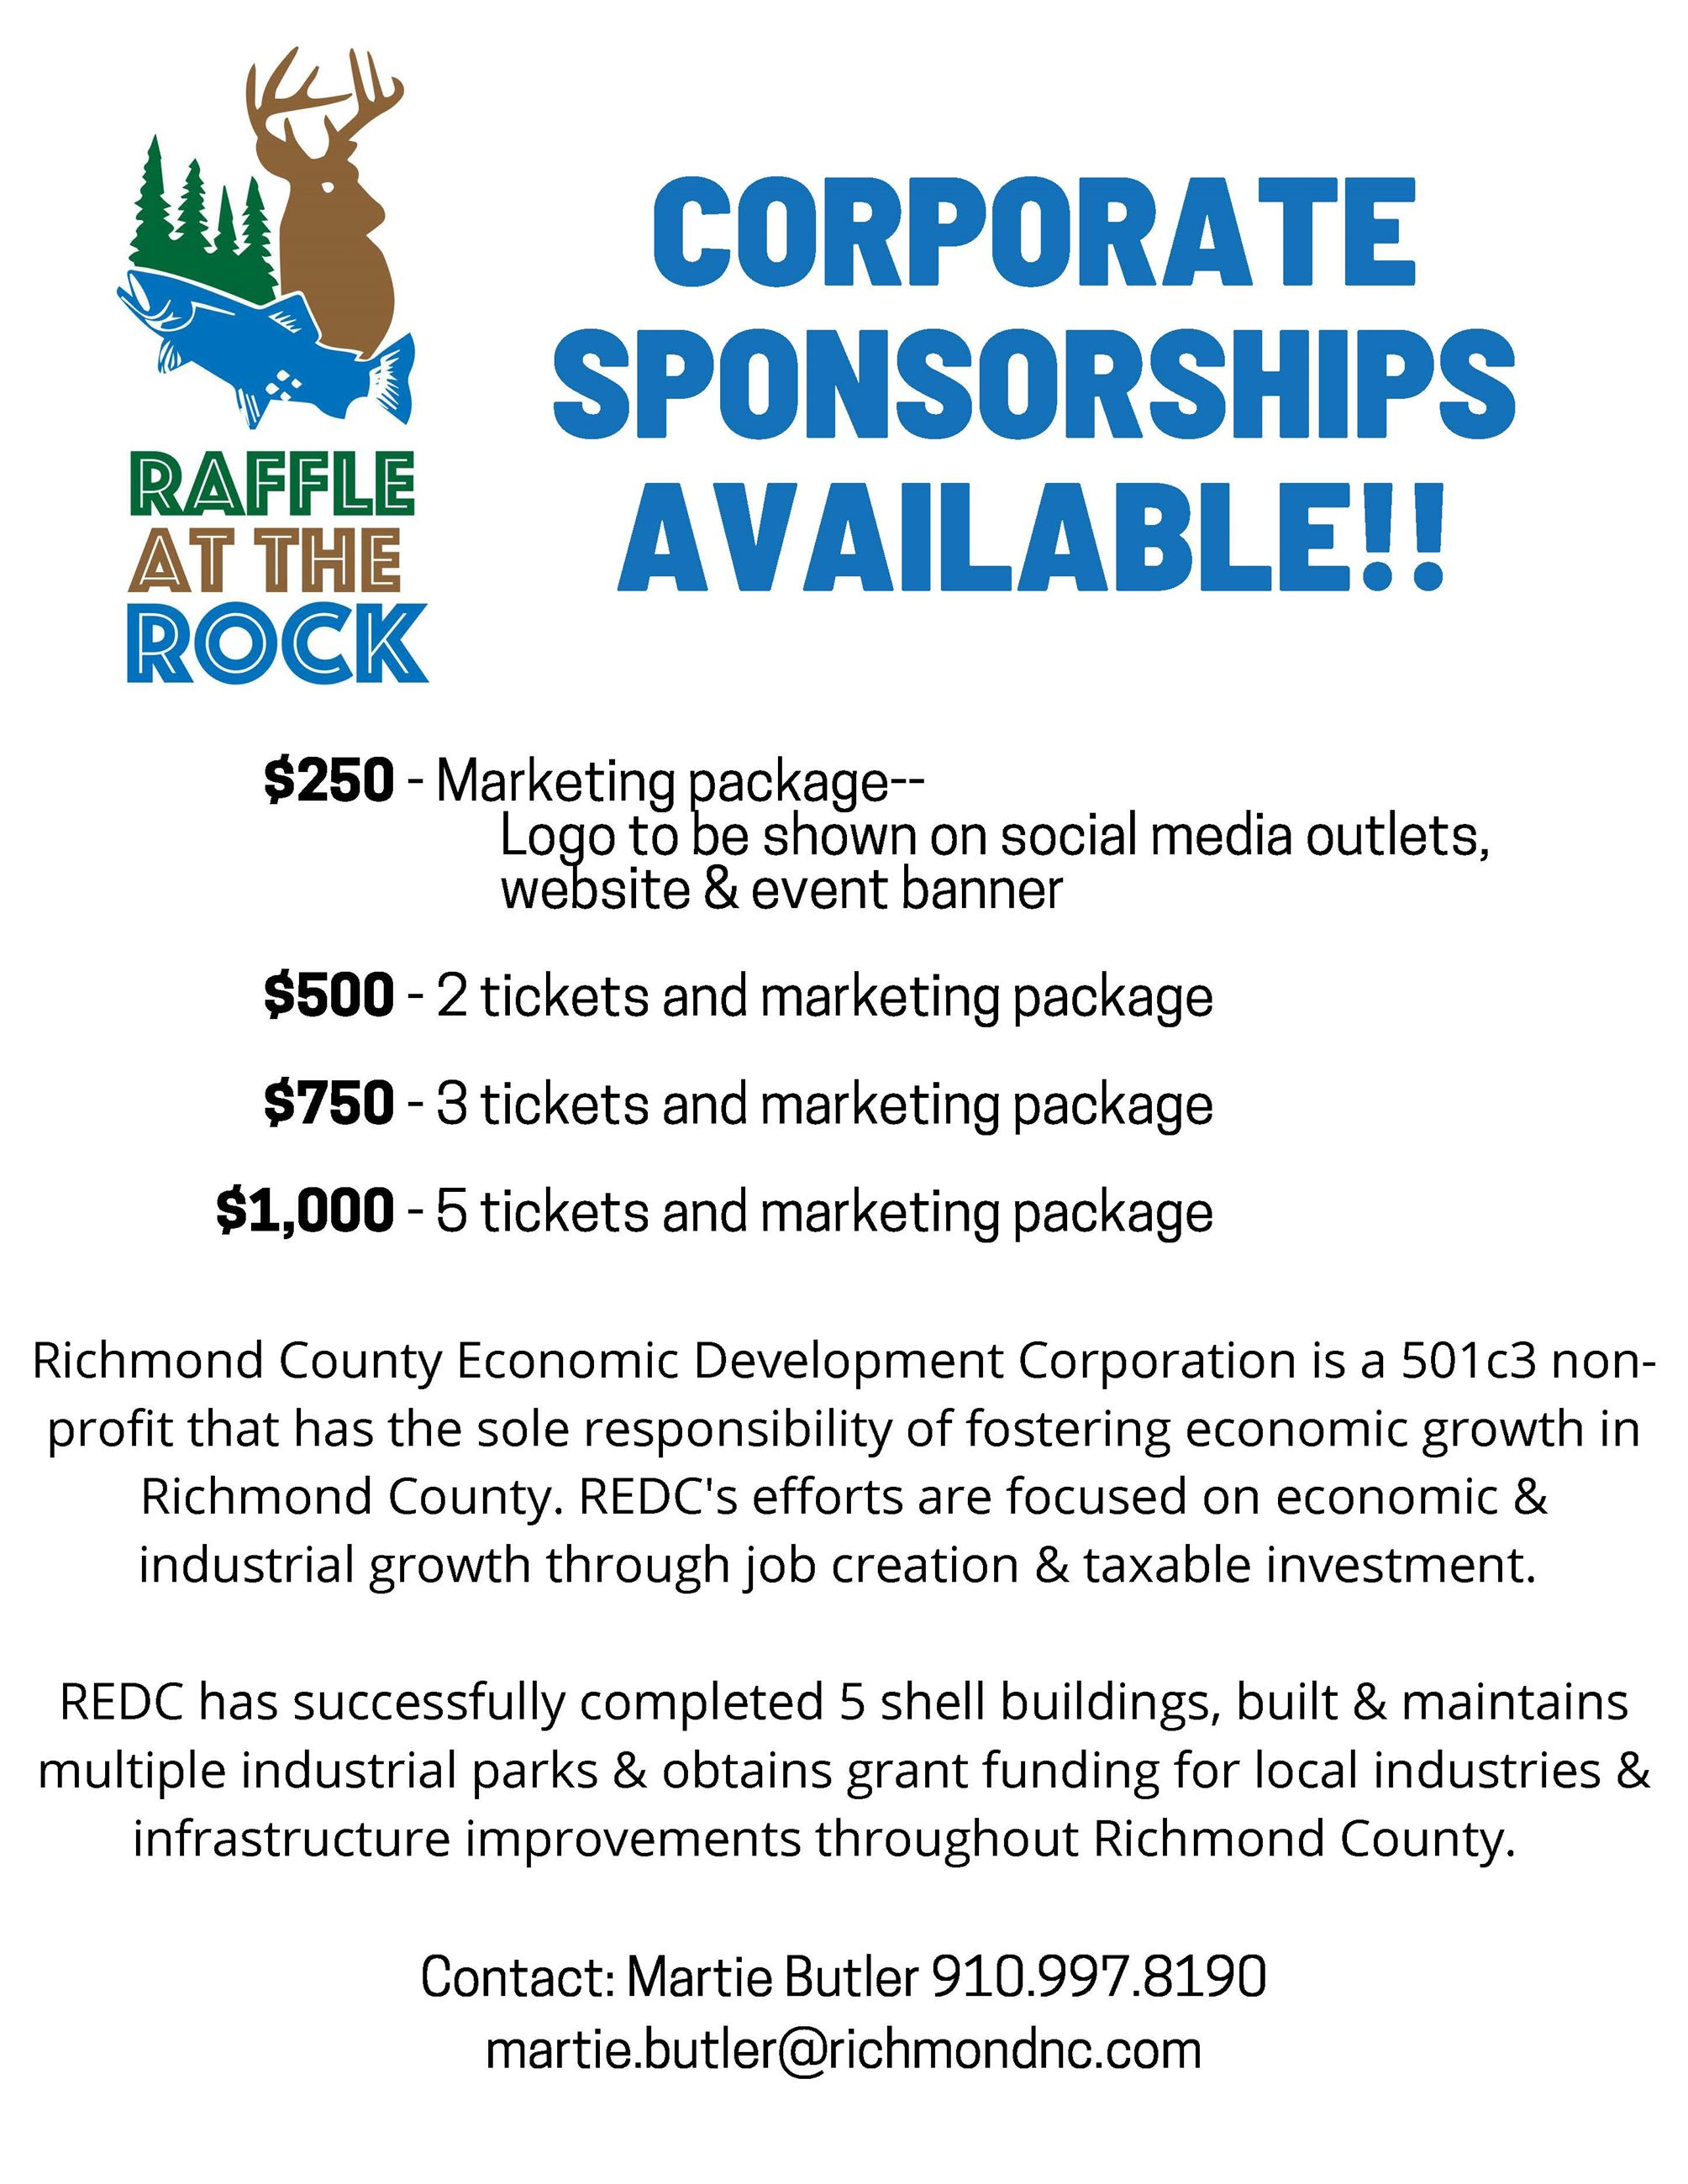 Corporate SPONSORSHIPS AVAILABLE!!